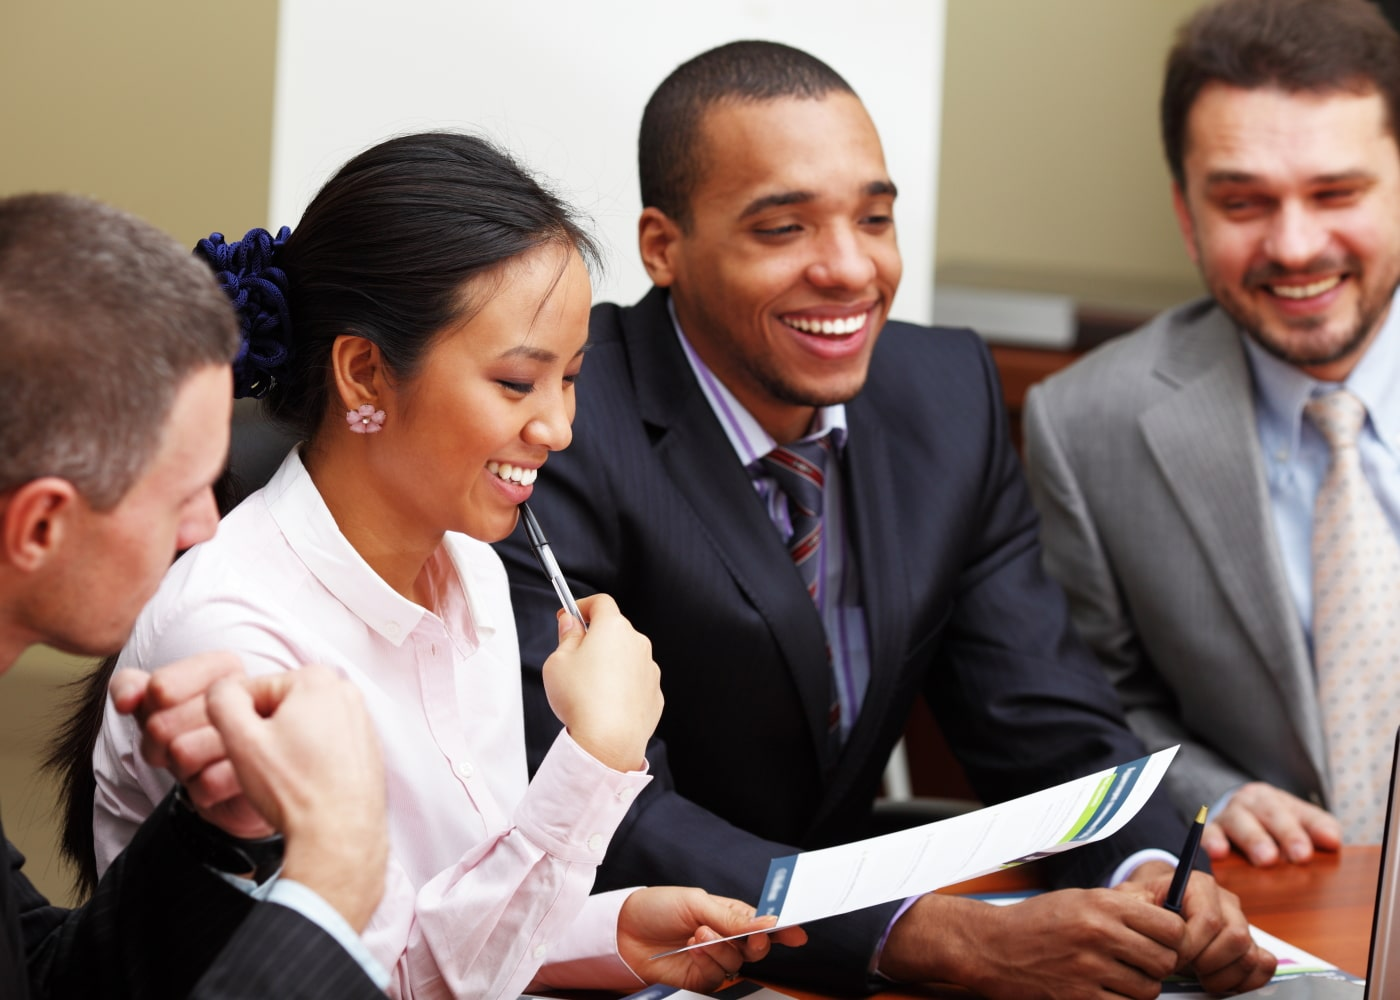 5 Insights to Increase Diversity and Inclusion on Your EHS&S Team